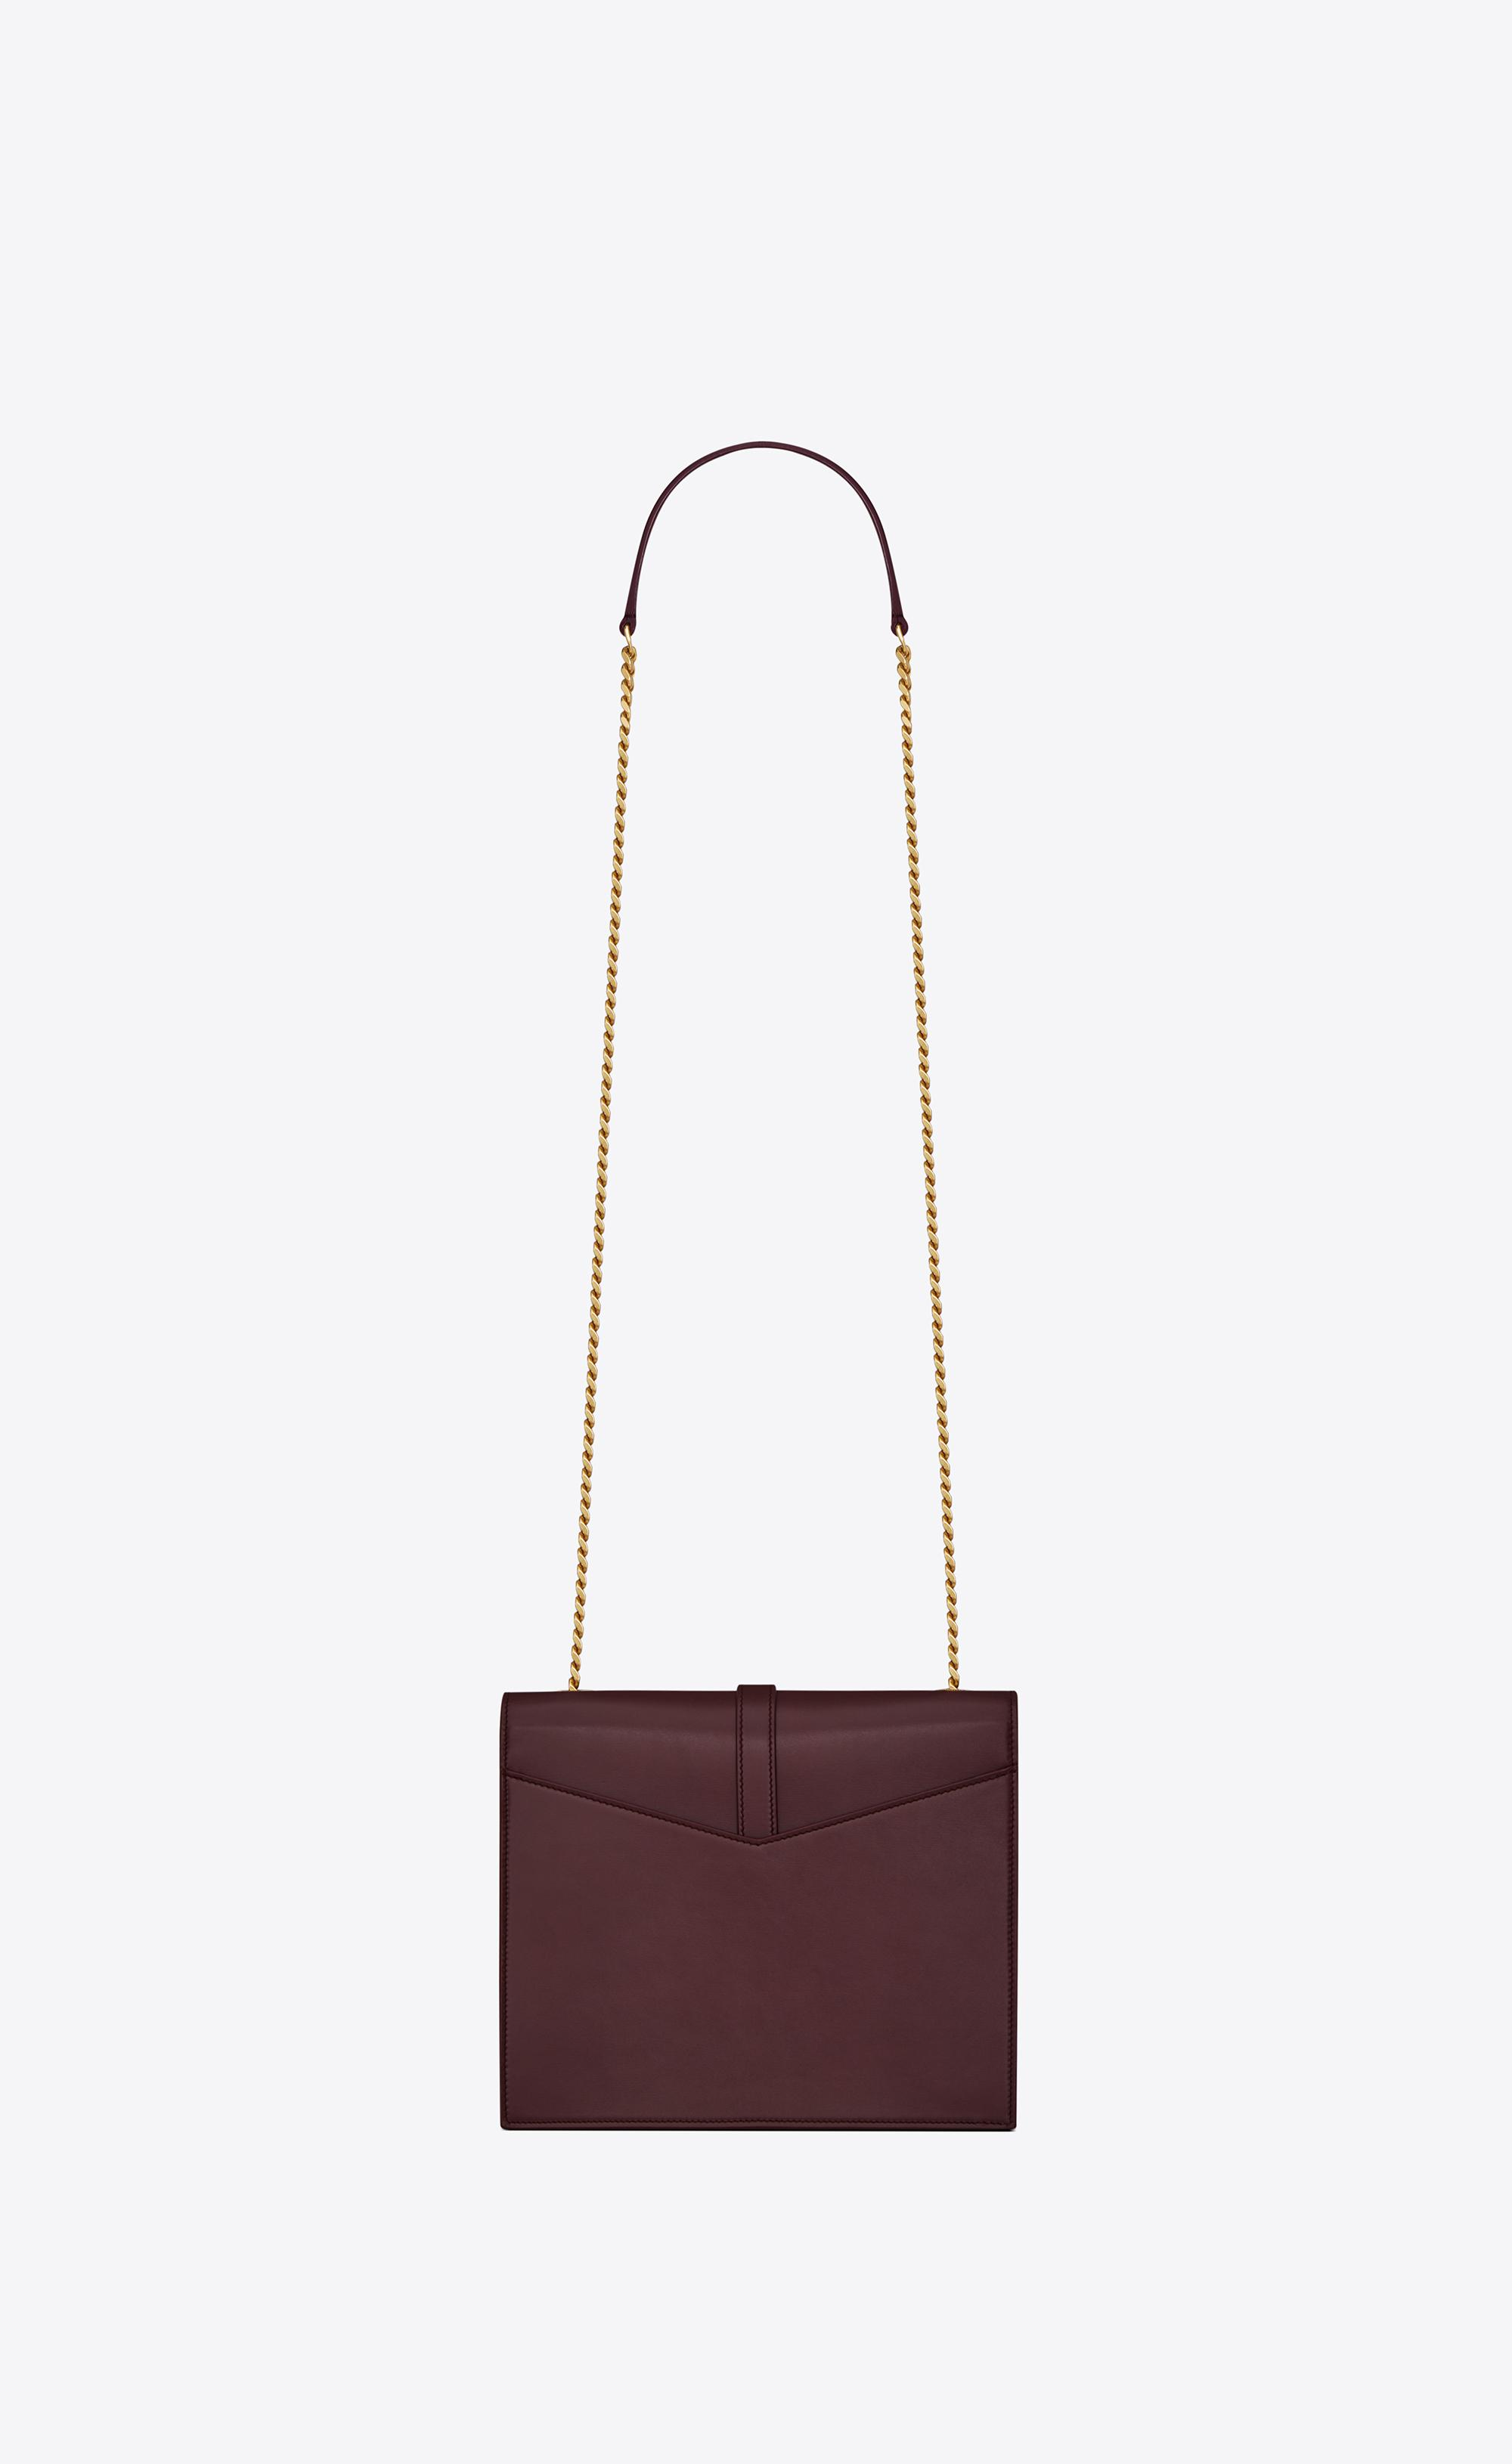 458896ecadd Saint Laurent Sulpice Medium In Smooth Leather in Red - Lyst